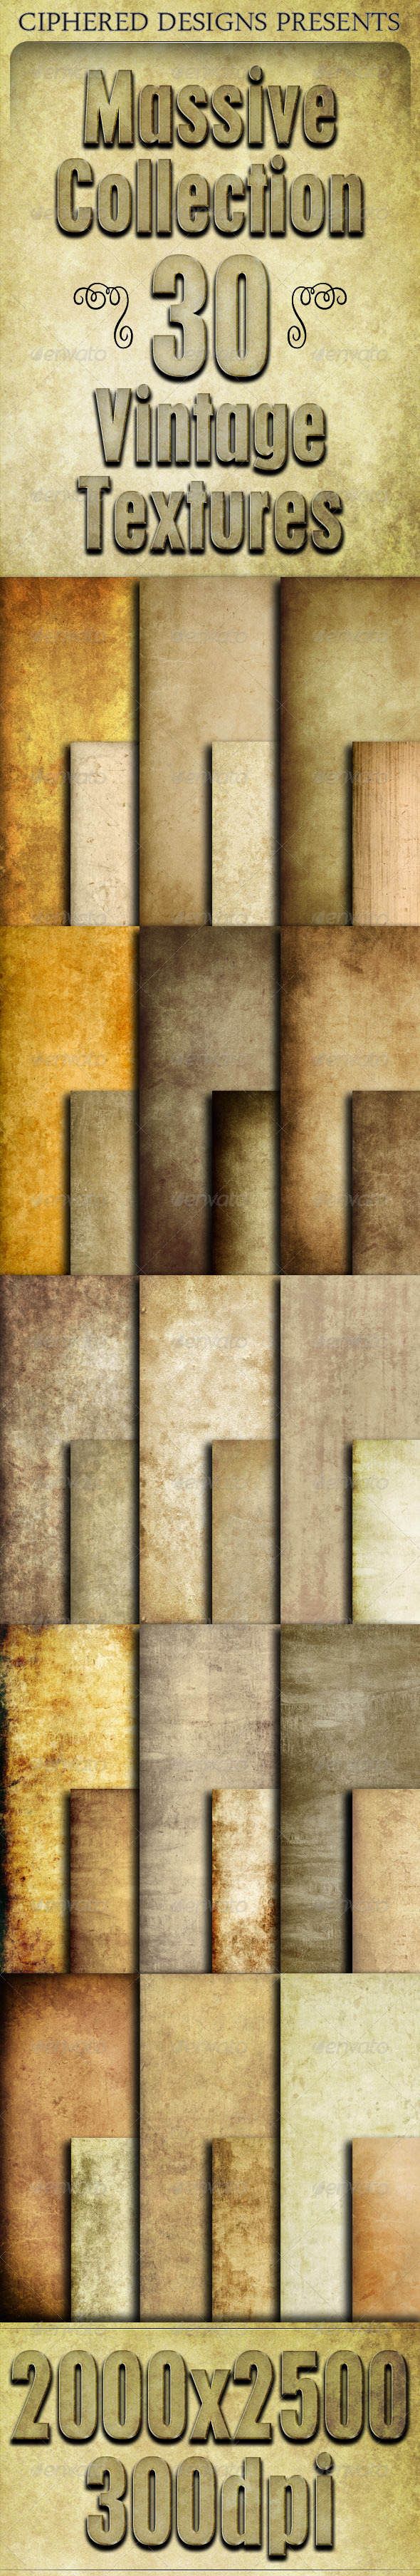 Massive Collection - 30 Vintage Textures - Paper Textures